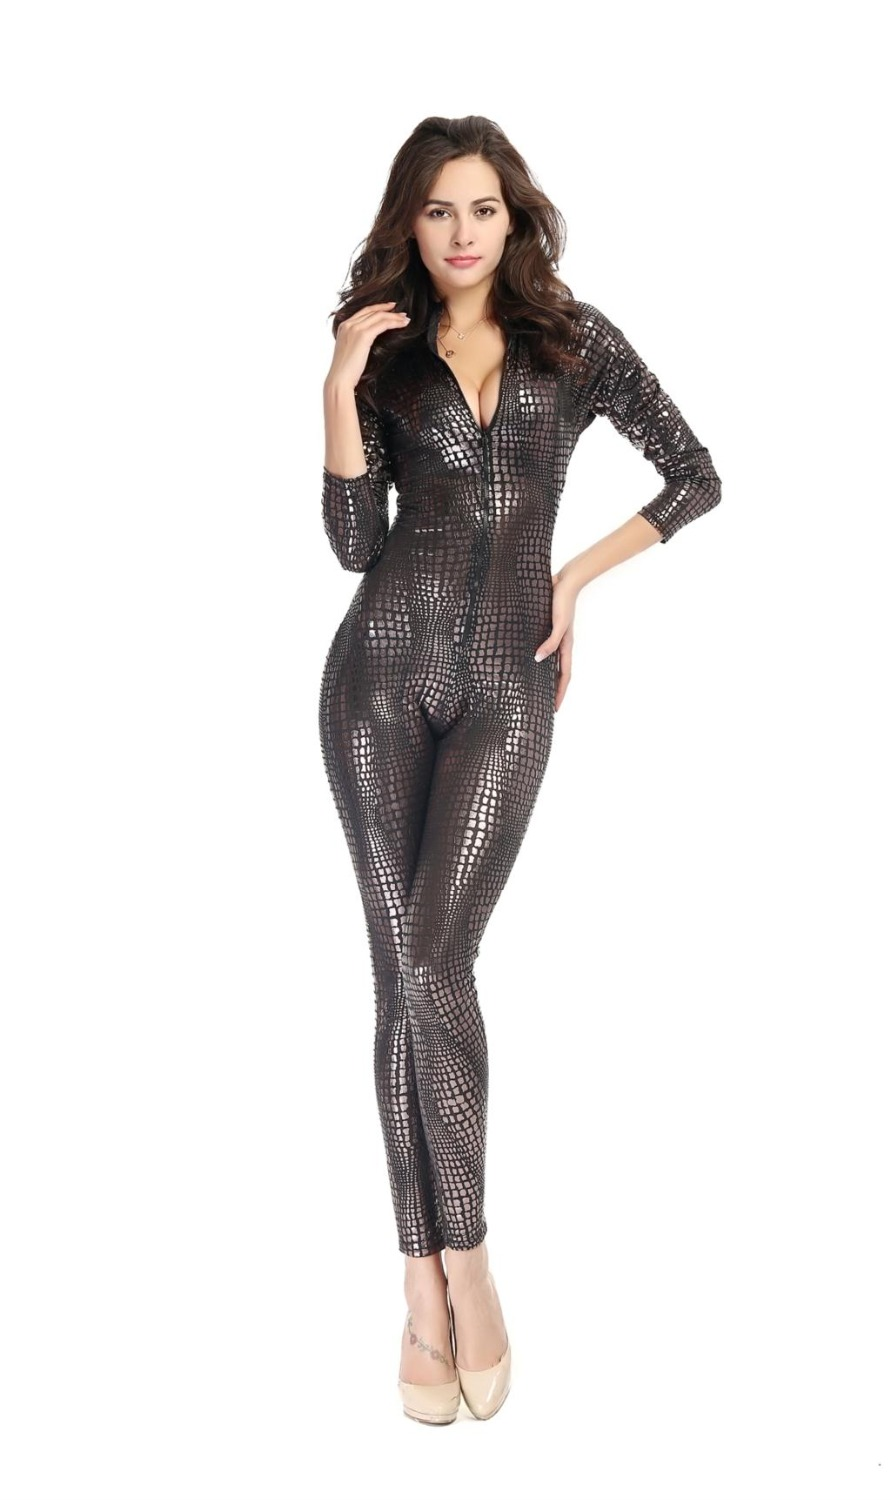 Adogirl Sexy Snakeskin Costume Jumpsuit Women New Nightclub Faux Leather Zipper V Neck Dance Disco Bar Pole Cosplays 3 Colors(China (Mainland))